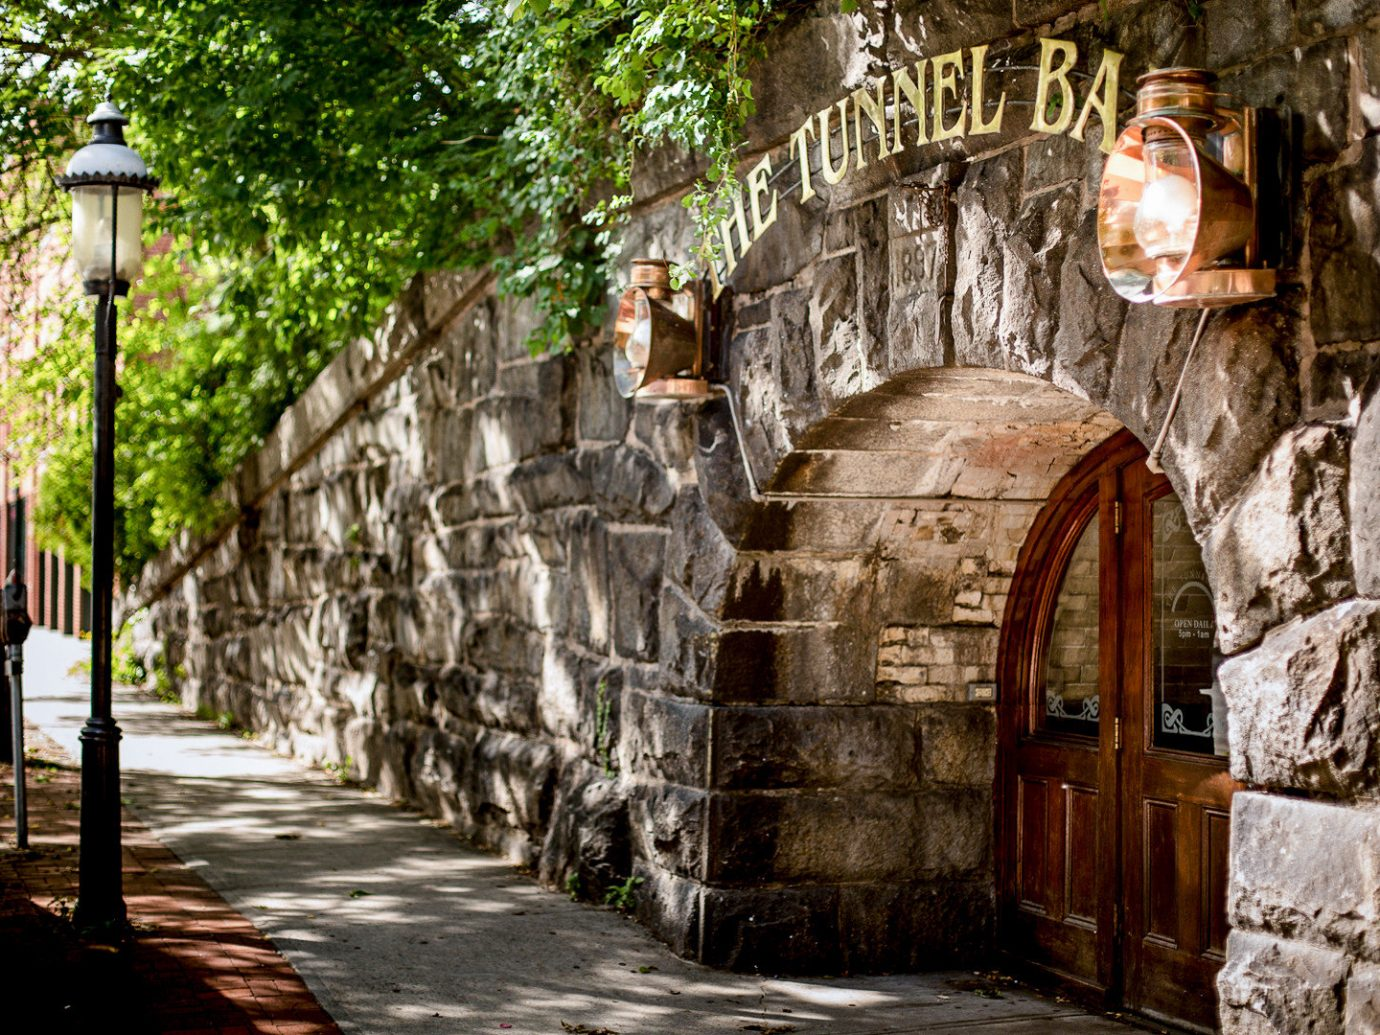 Boutique Hotels Fall Hotels Outdoors + Adventure Trip Ideas Weekend Getaways building outdoor tree way stone street alley arch plant road sidewalk